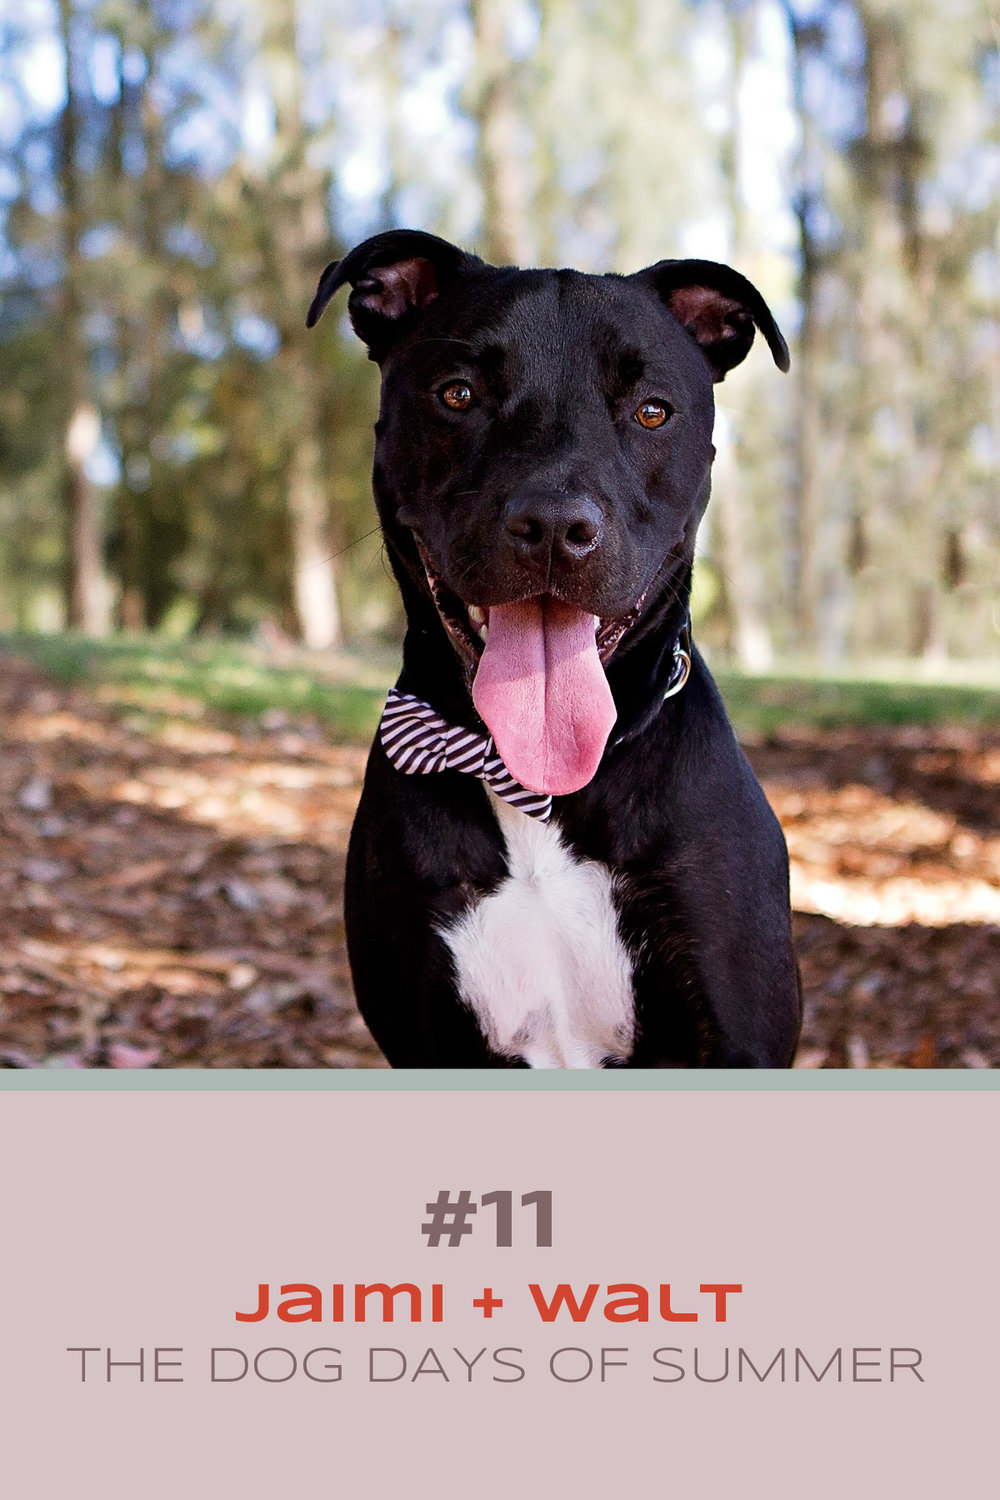 Black staffy dog takes part in Sydney pet photographer's Dog Days of Summer with his owner - where we celebrate women's best friend!